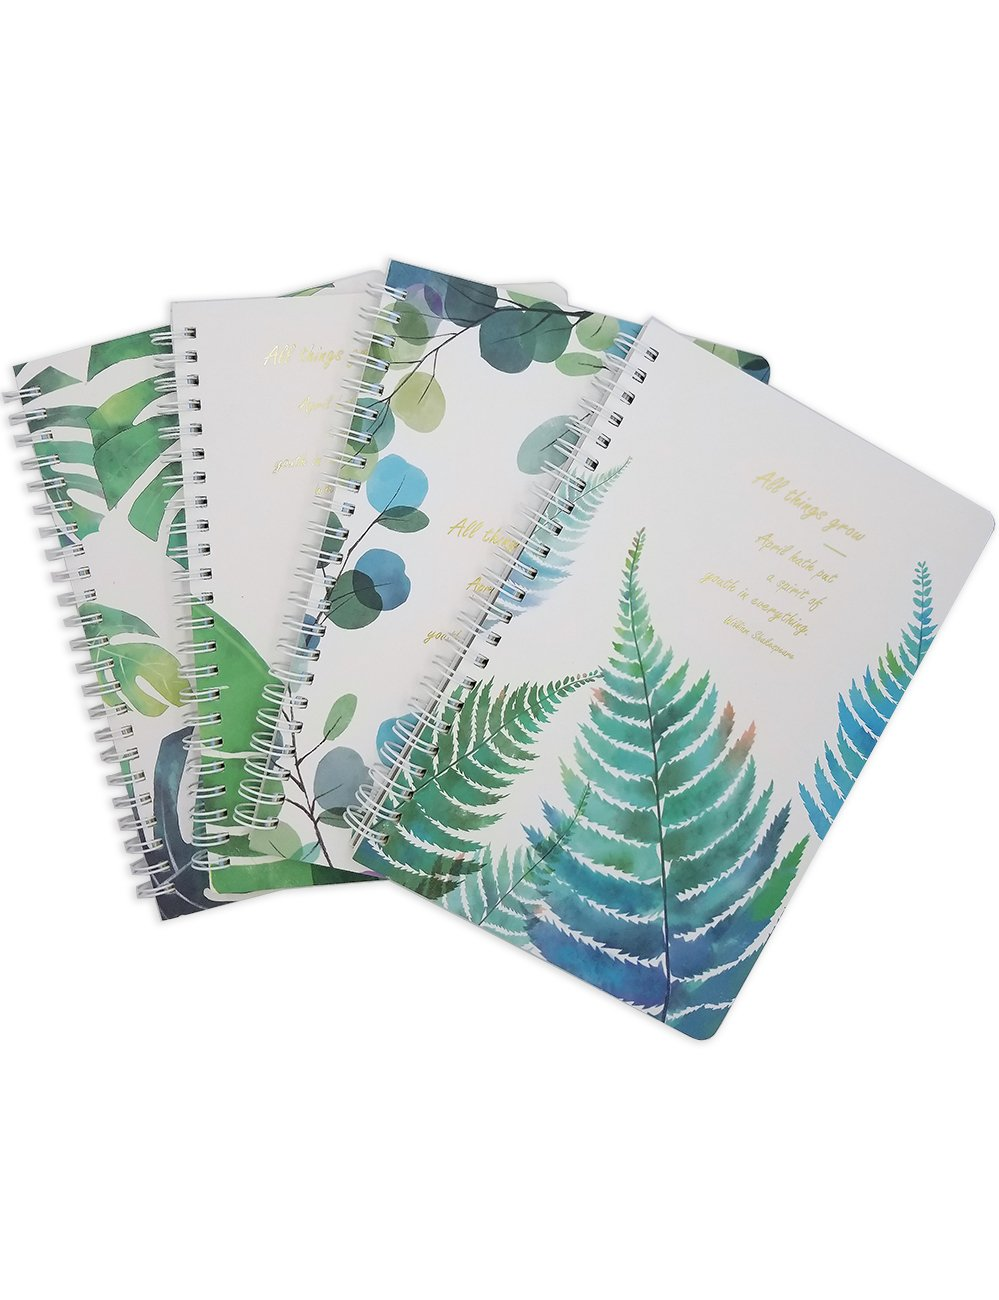 What's Fun A5 Spiral Theme designed Hardcover College Ruled Notebook/Composition/Journals/Dairy/Office Note Books Pack of 4(All Things Grow)